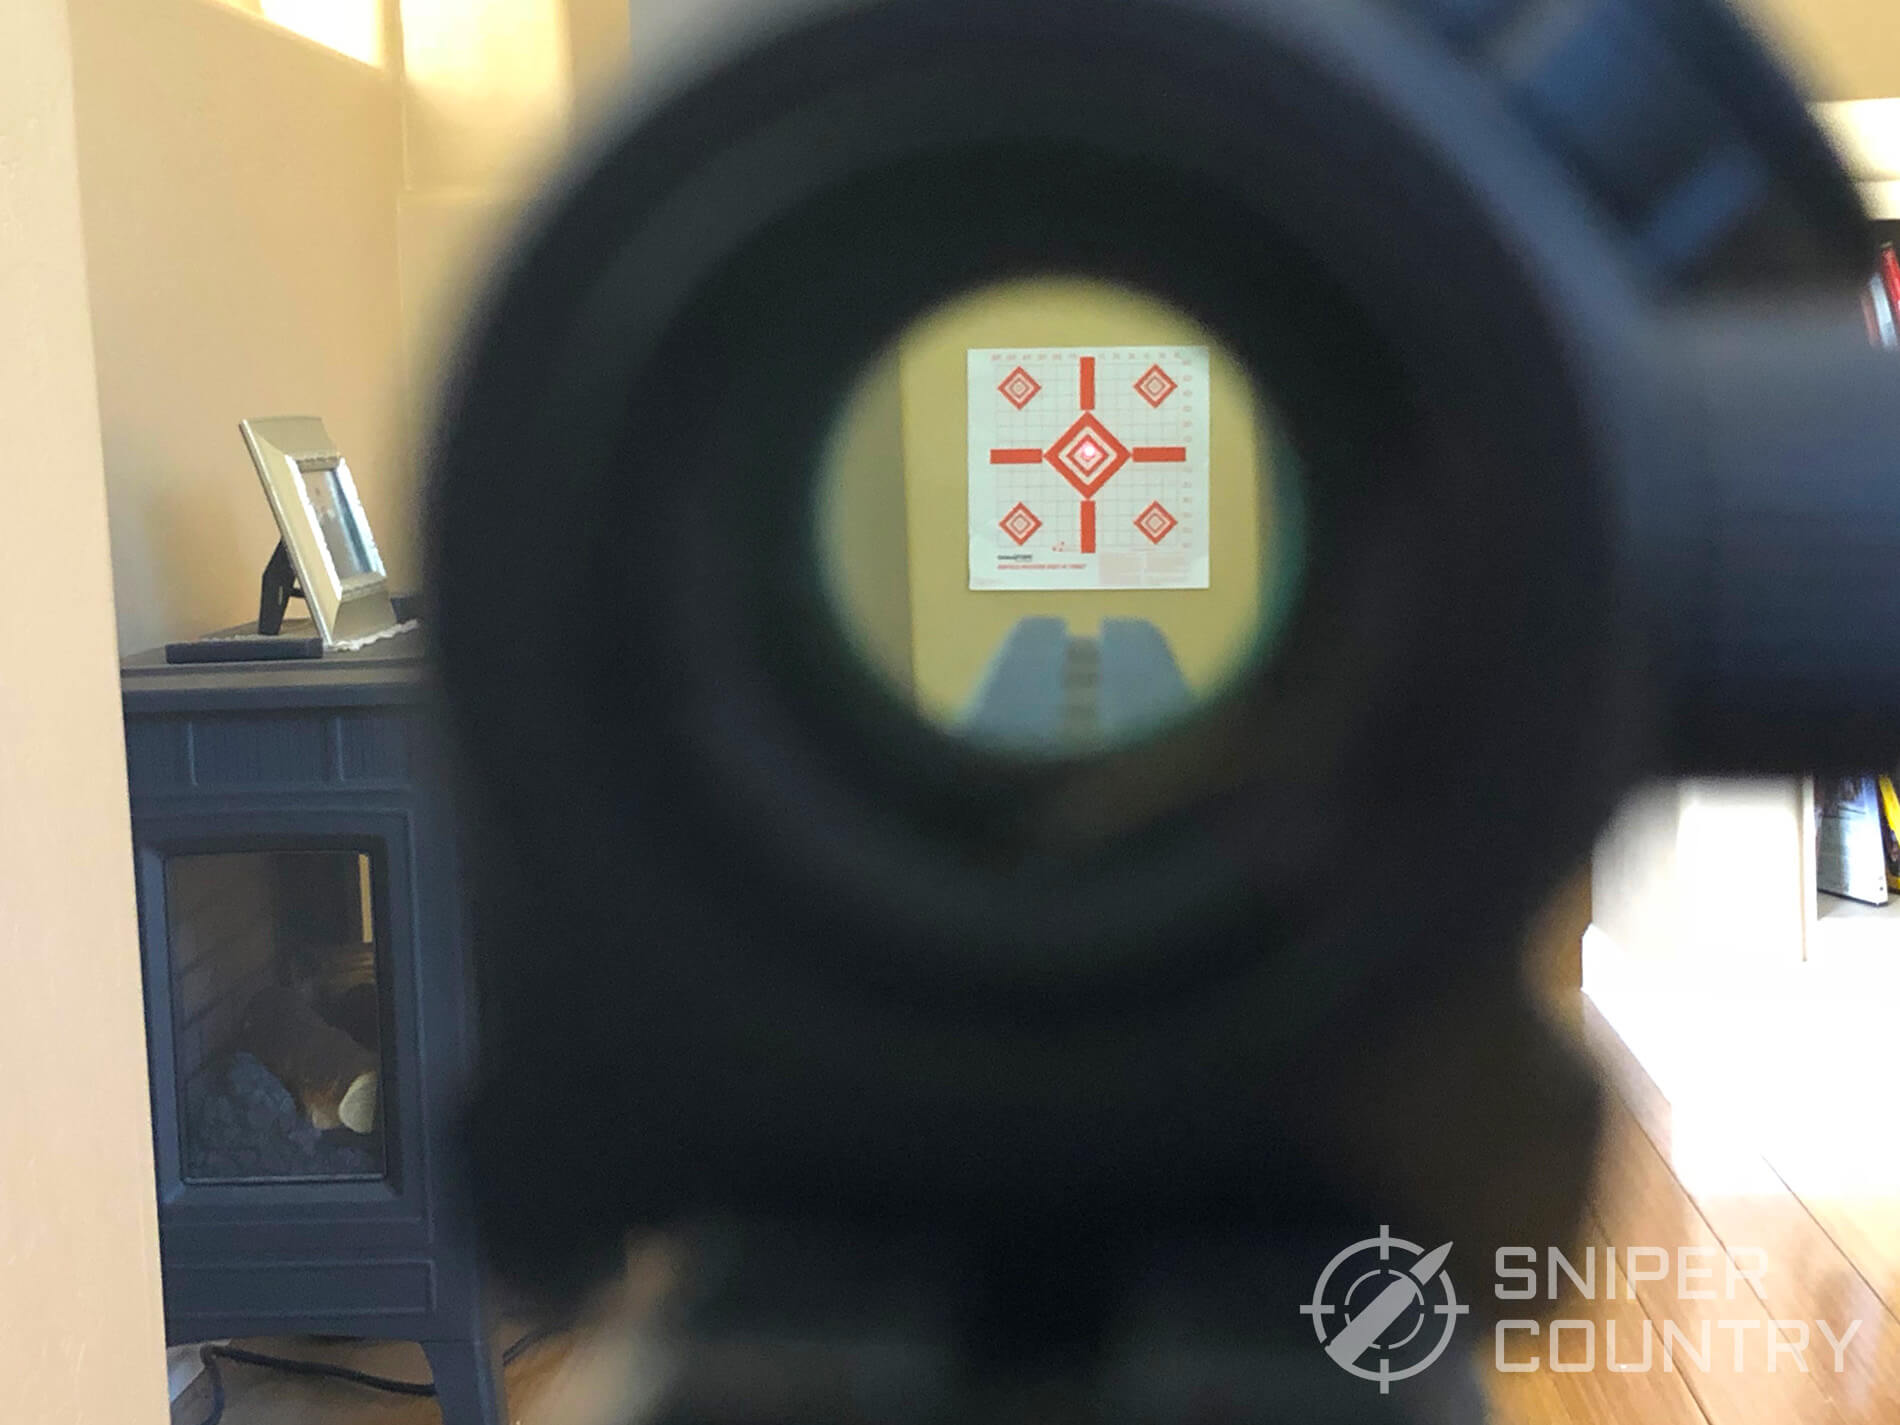 Bushnell TRS Red Dot see through on target